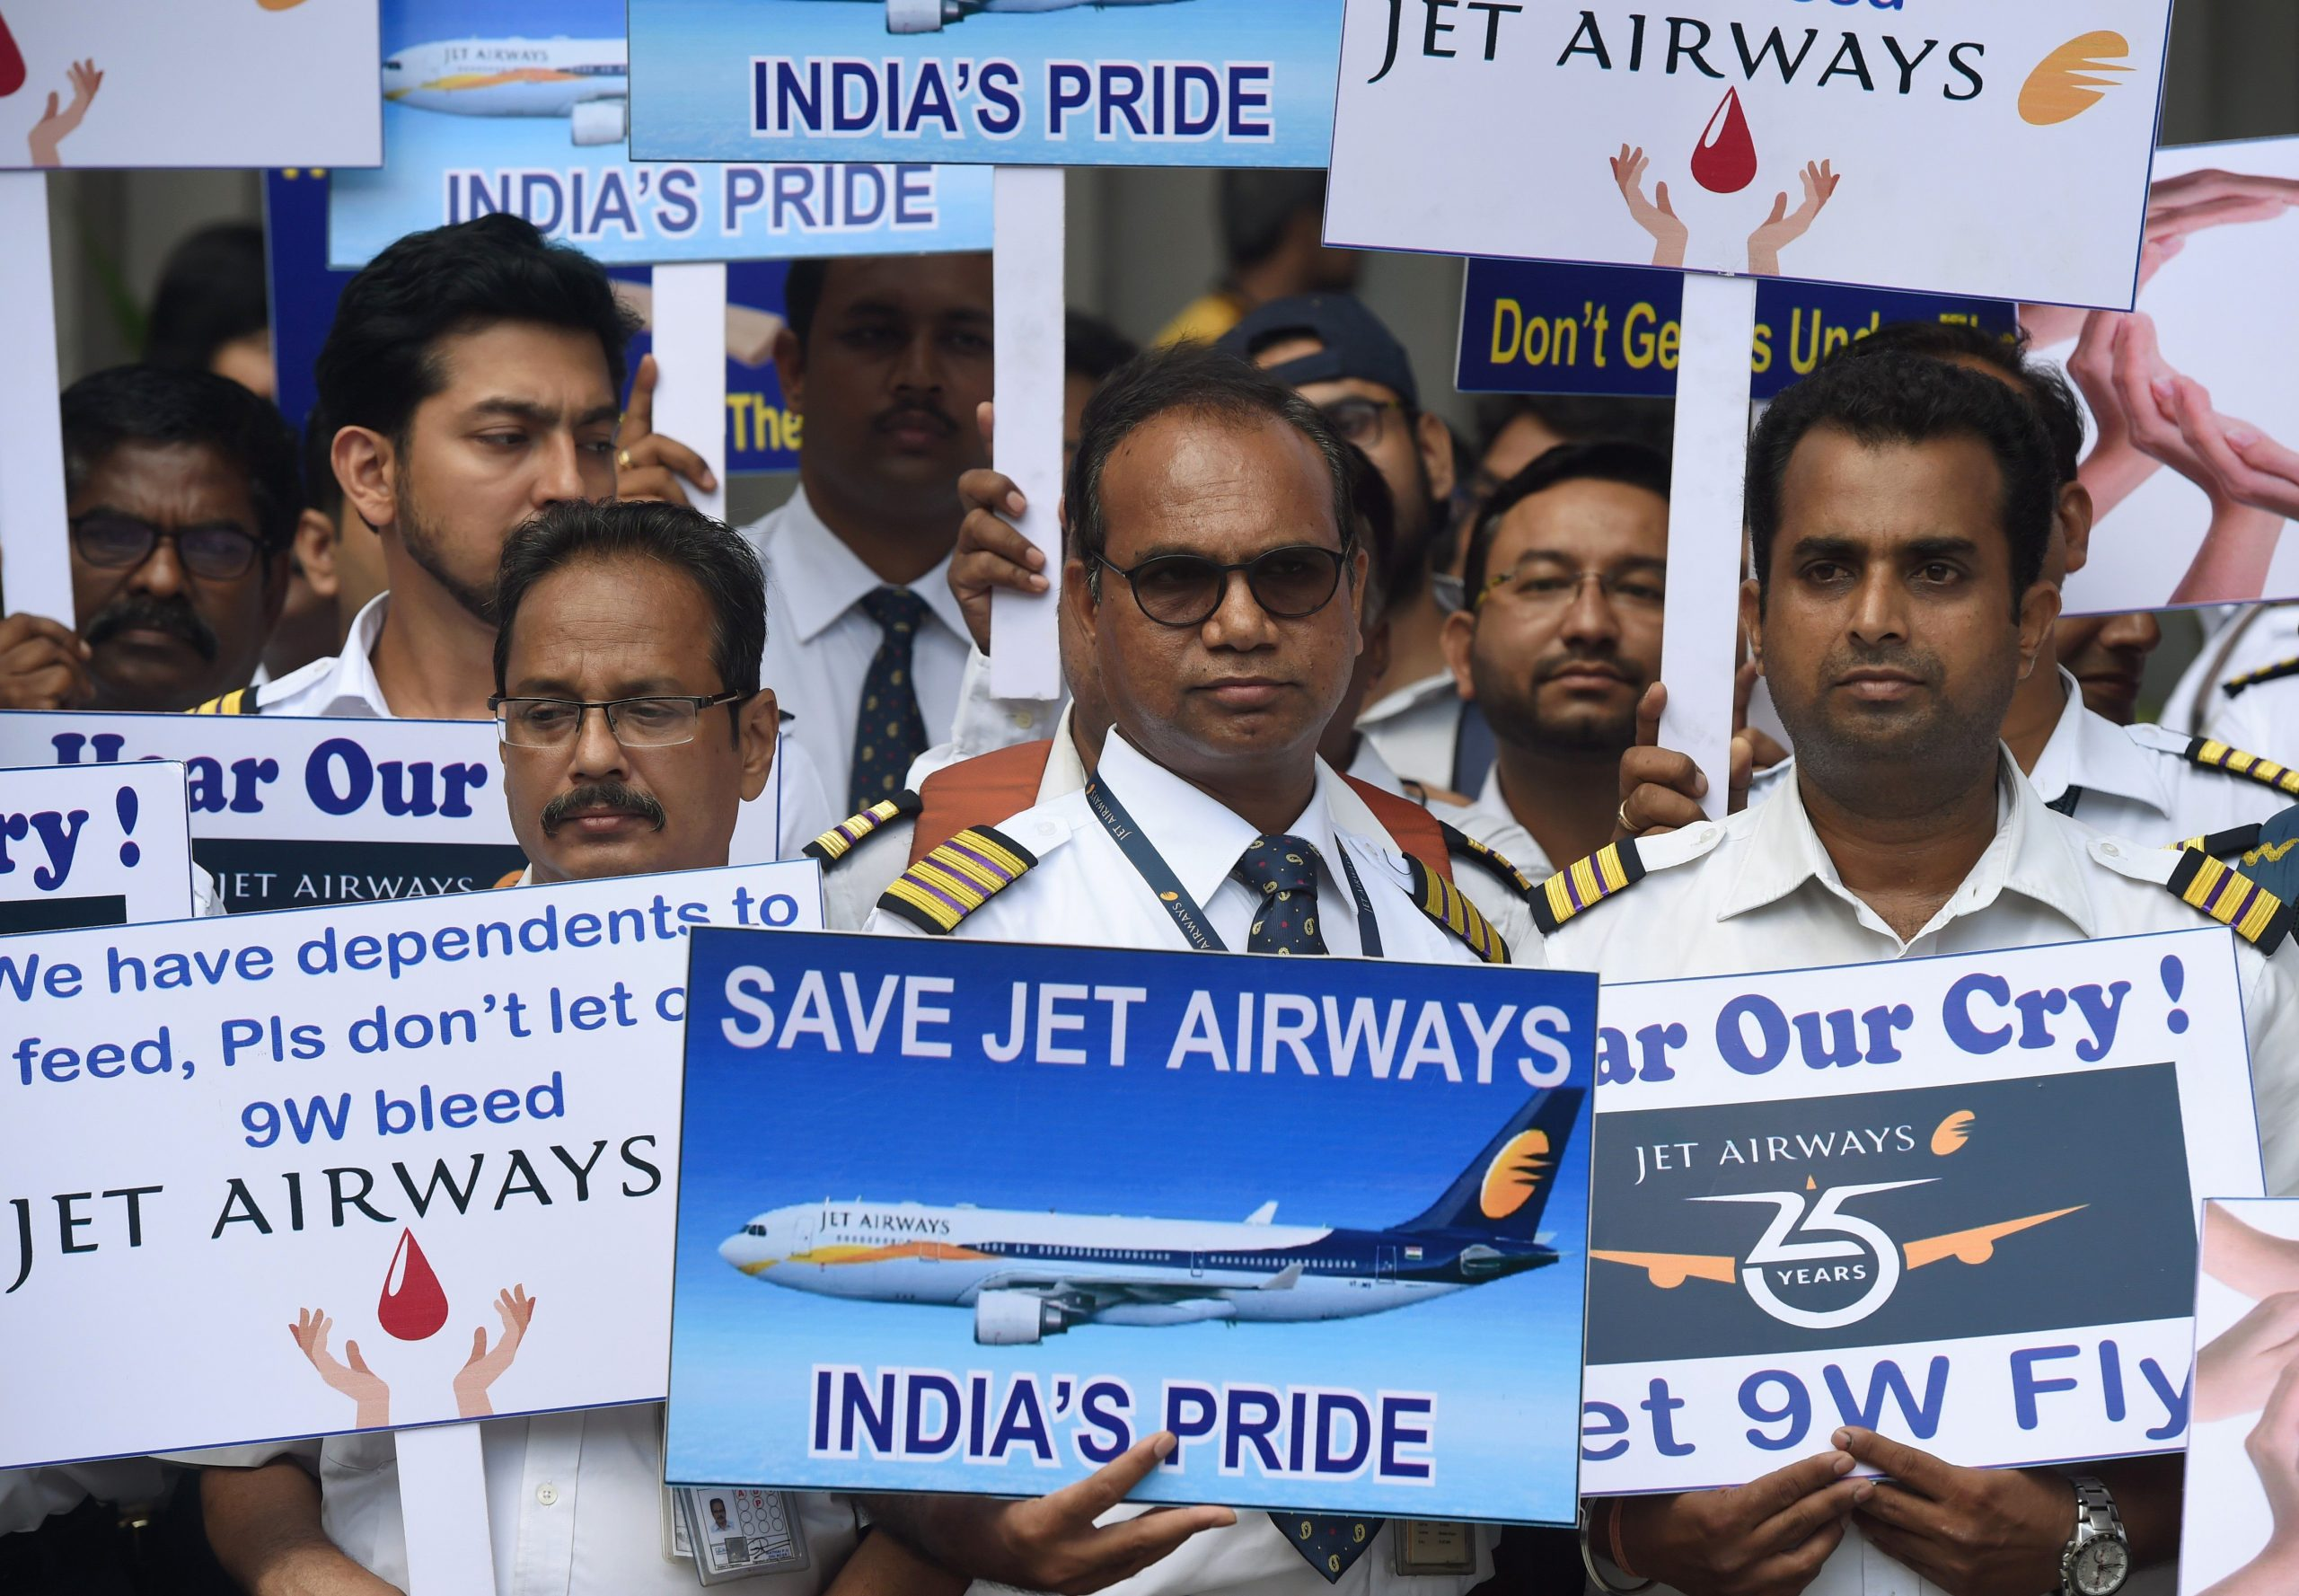 India's Jet Airways employees hold placards during a silent protest in Mumbai on May 8, 2019. - India's debt-stricken Jet Airways halted all of its operations last month after failing to secure emergency funding from lenders, leaving it teetering on the edge of bankruptcy. (Photo by PUNIT PARANJPE / AFP)        (Photo credit should read PUNIT PARANJPE/AFP via Getty Images)